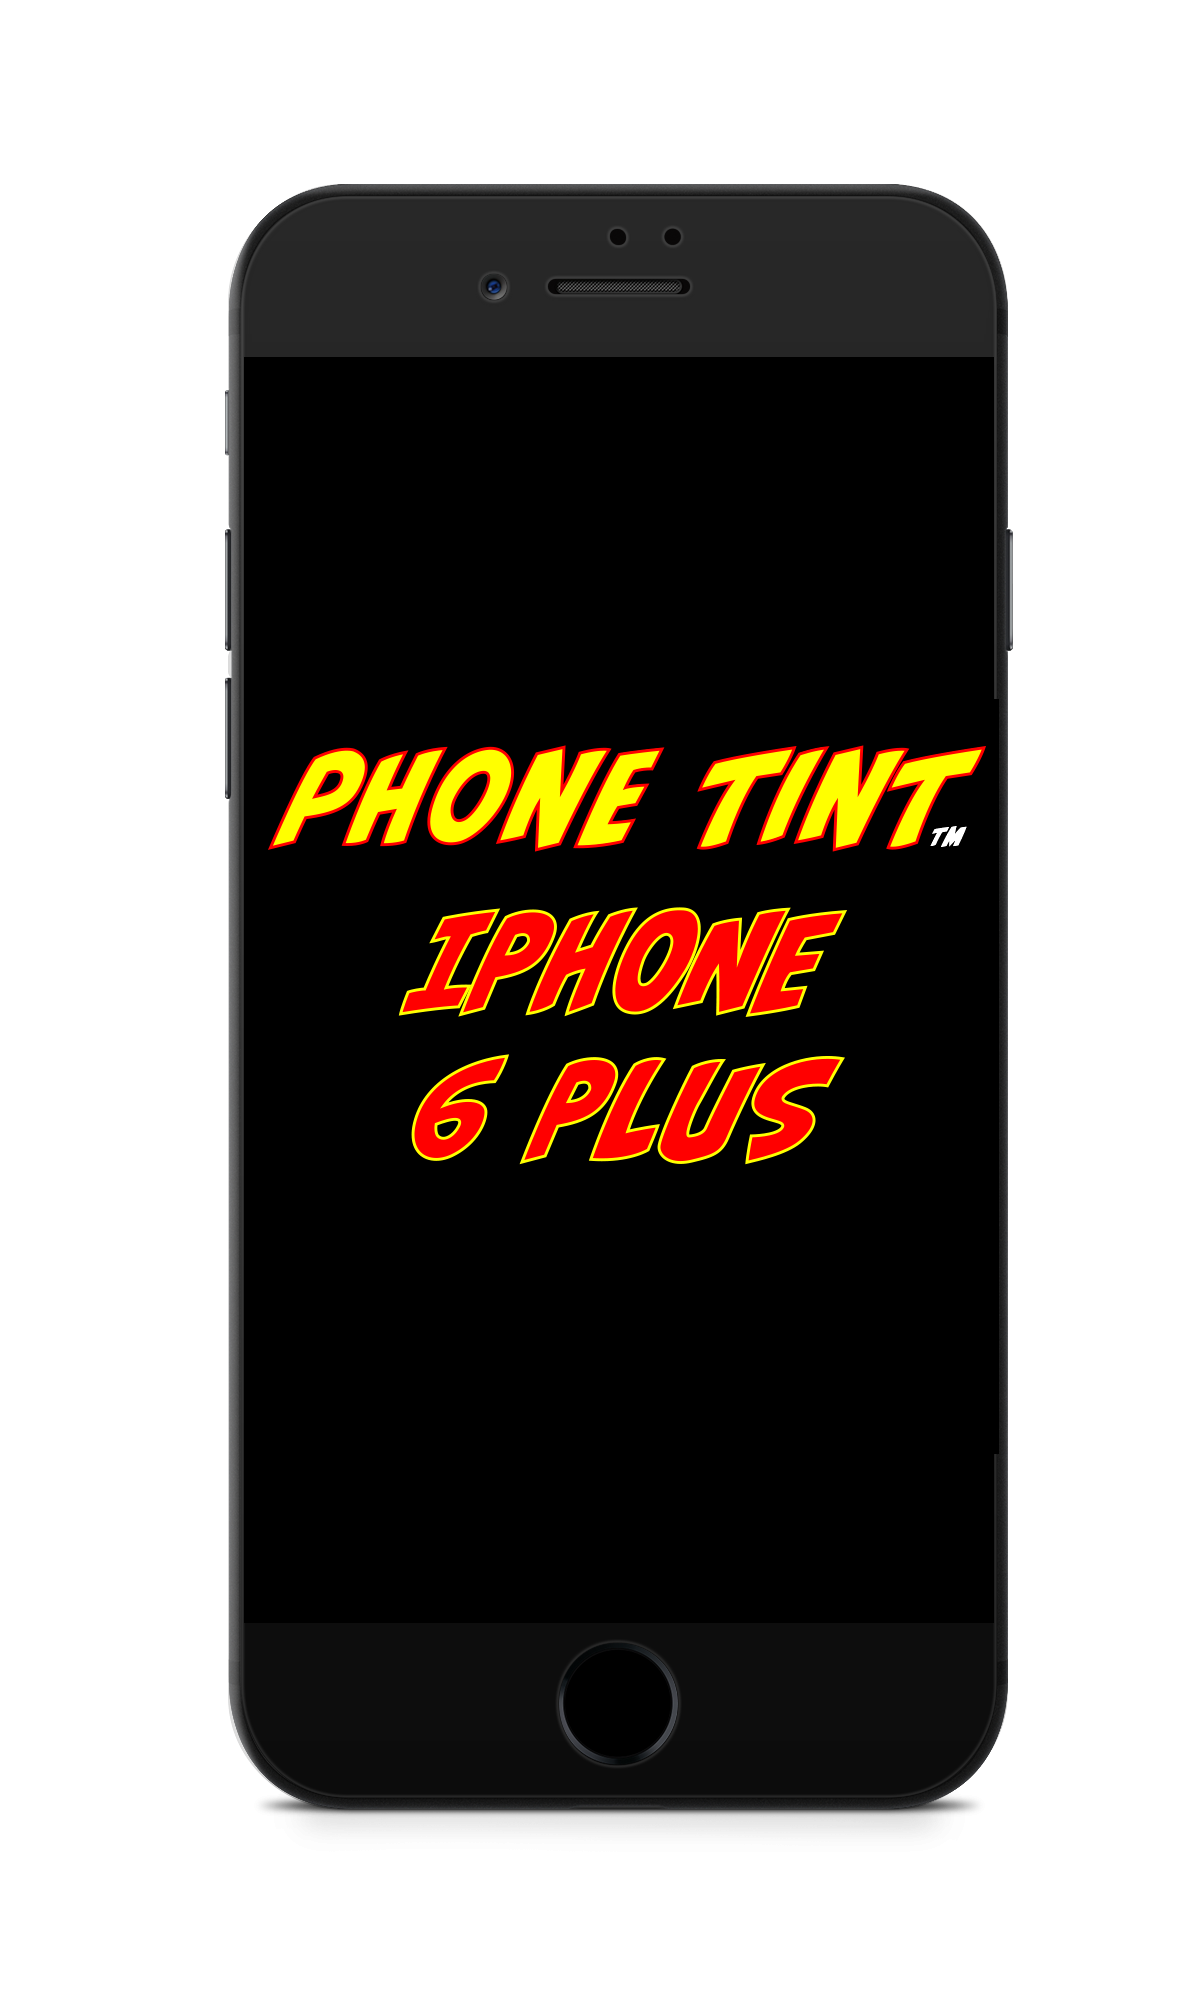 Iphone 6-6s plus phone tint privacy tempered glass screen protector. SKINZ Edmonton